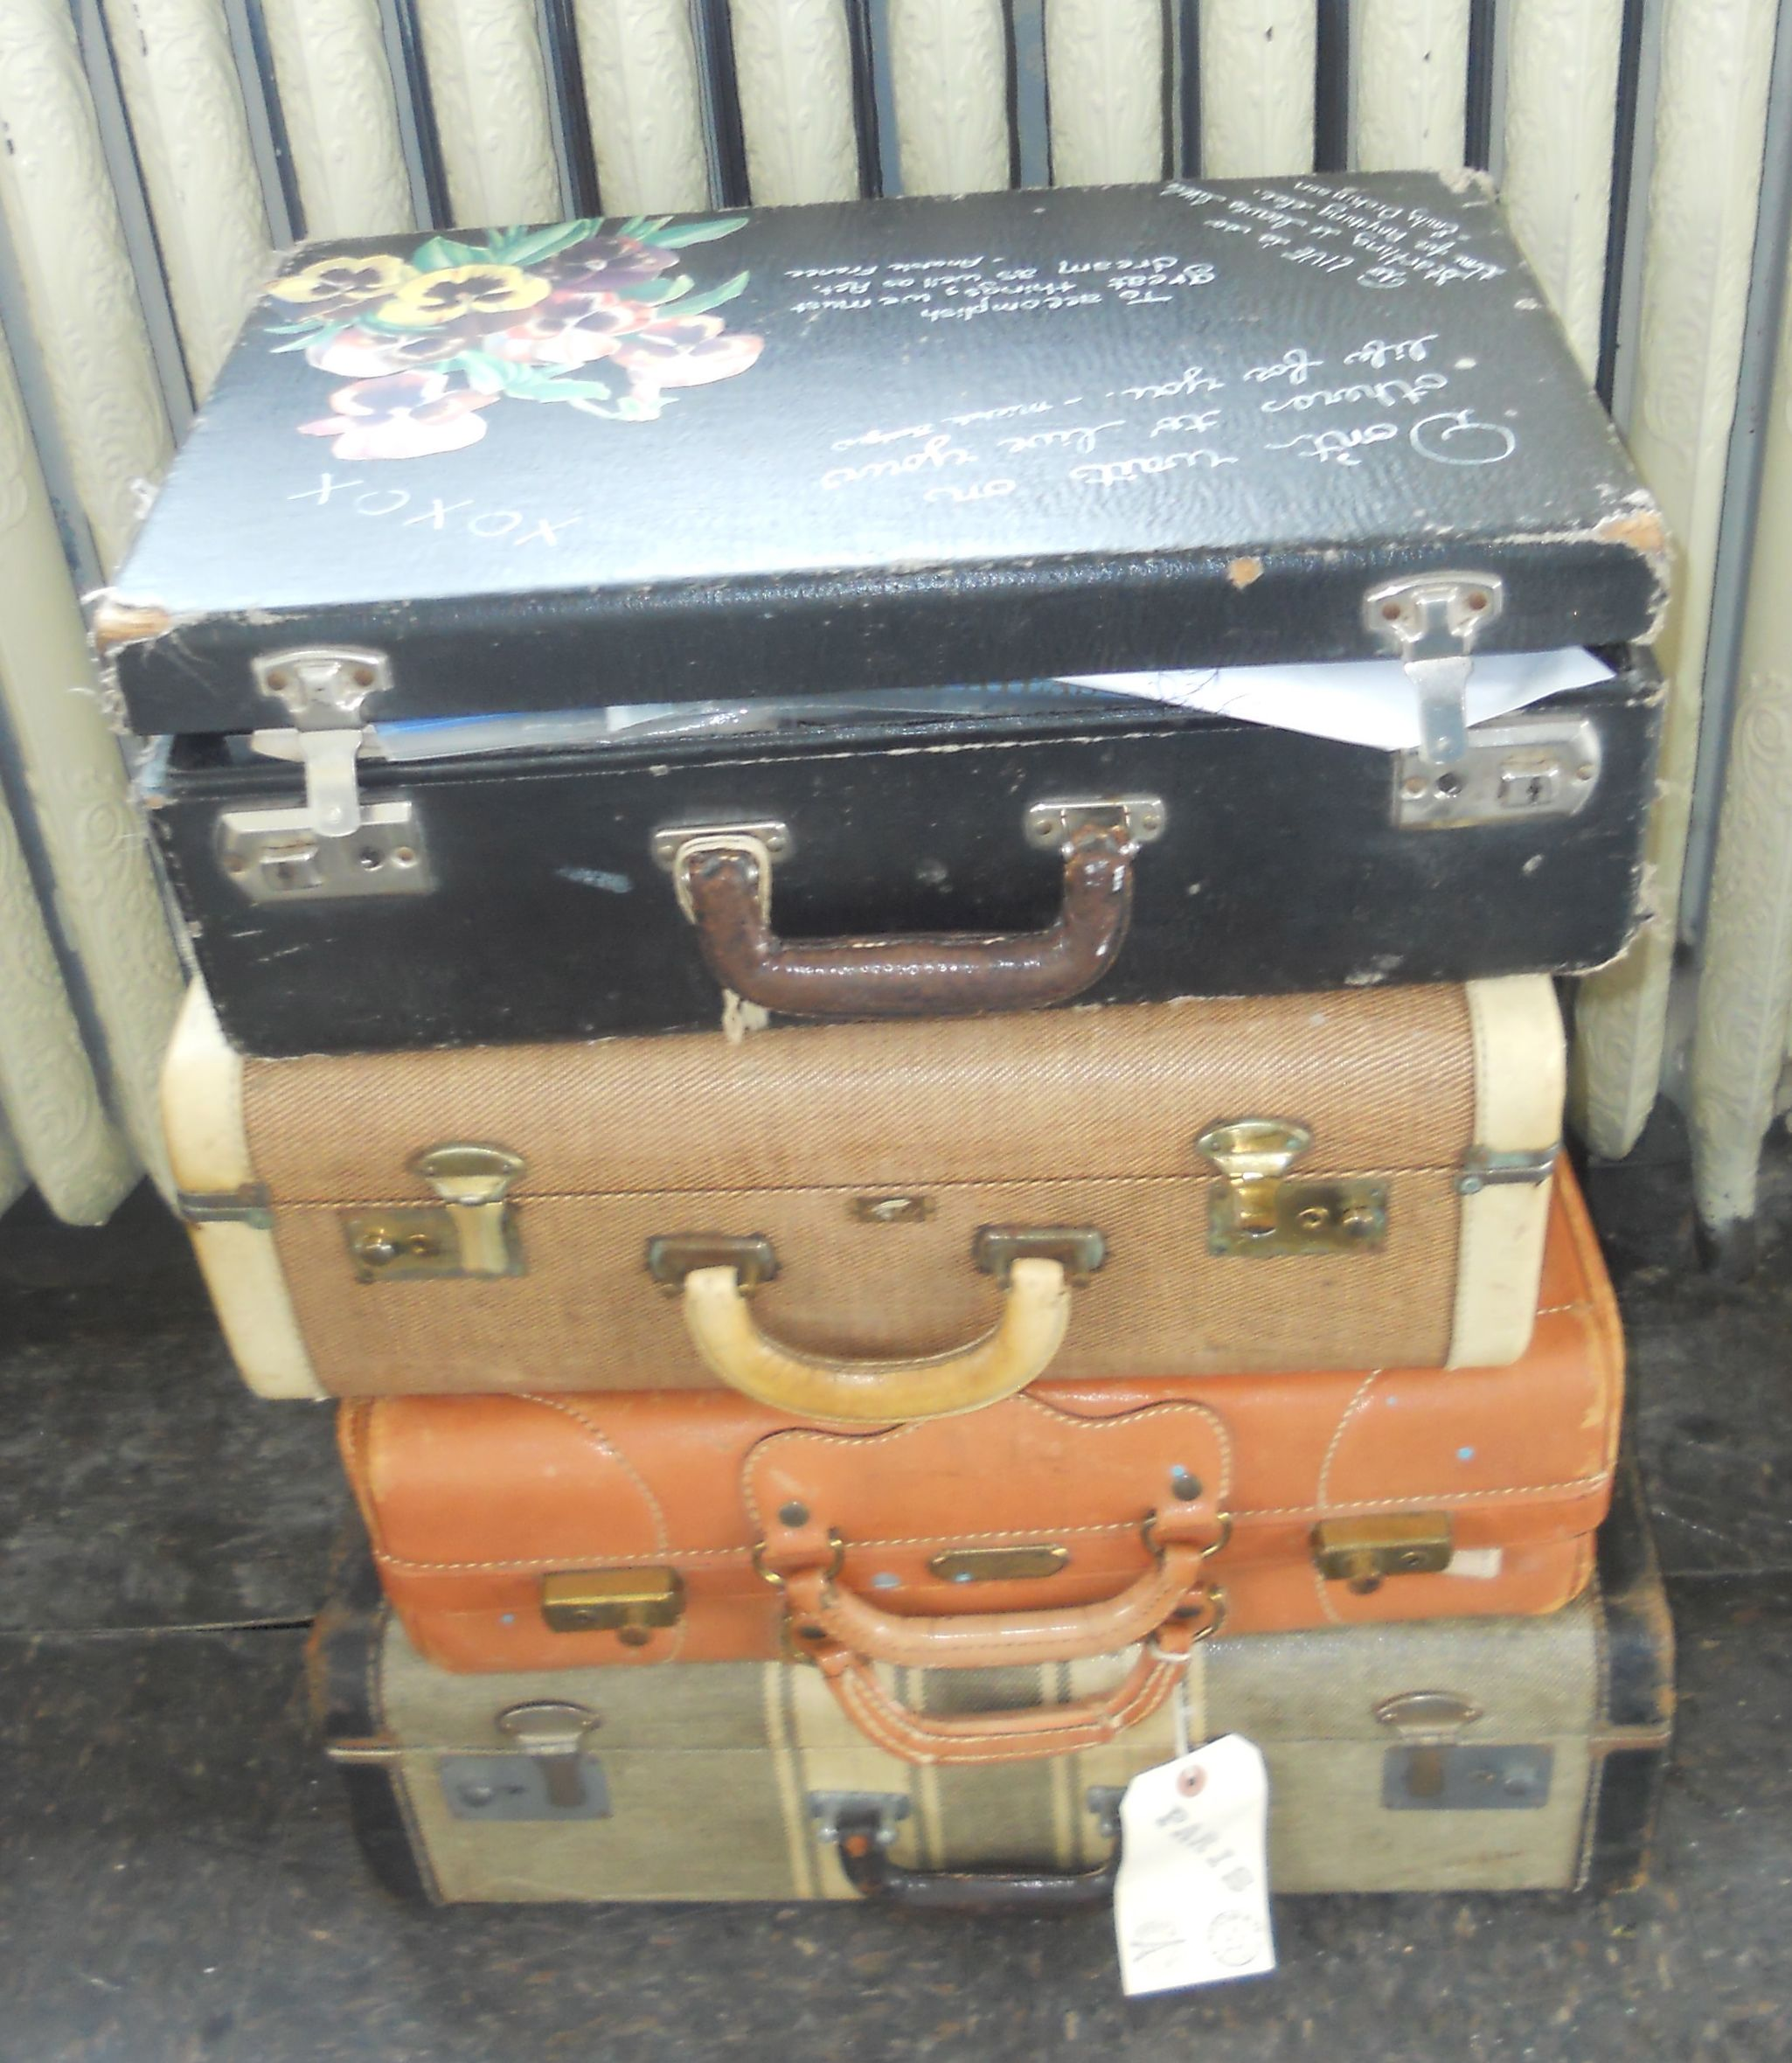 I can not get enough of old suite cases. There is always a NEED